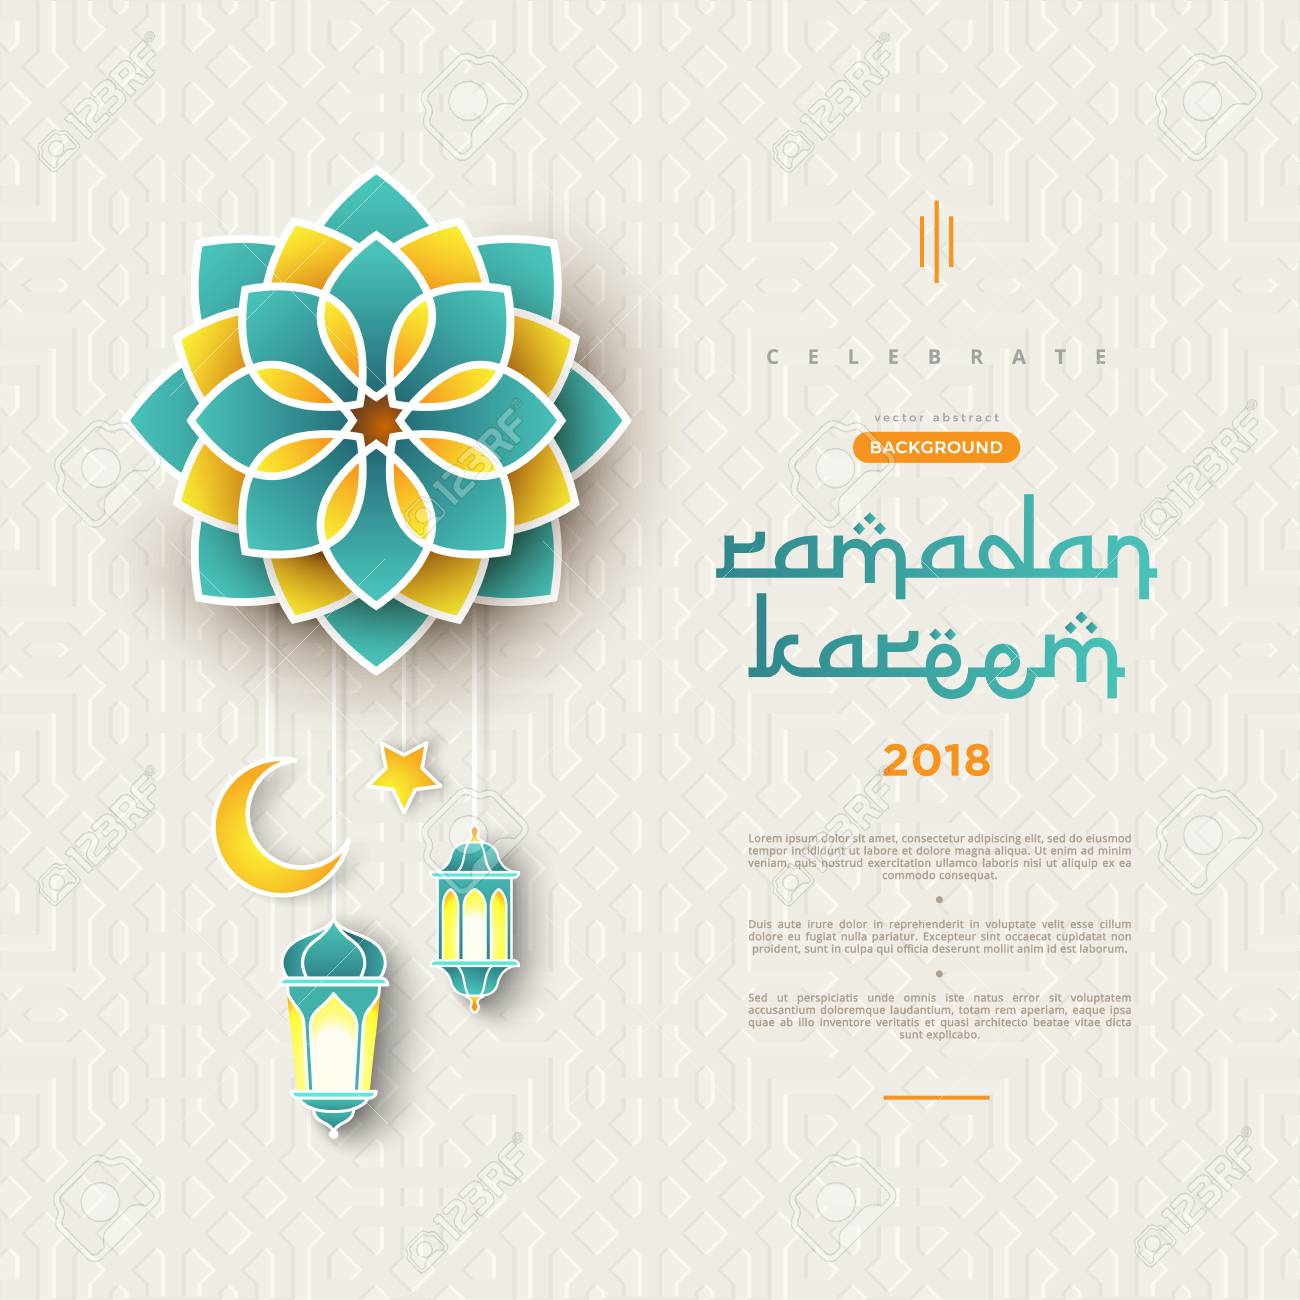 Ramadan Kareem concept banner with islamic geometric patterns and frame. Paper cut flowers, traditional lanterns, moon and stars on dark green tosca background color. Vector illustration - 102166284